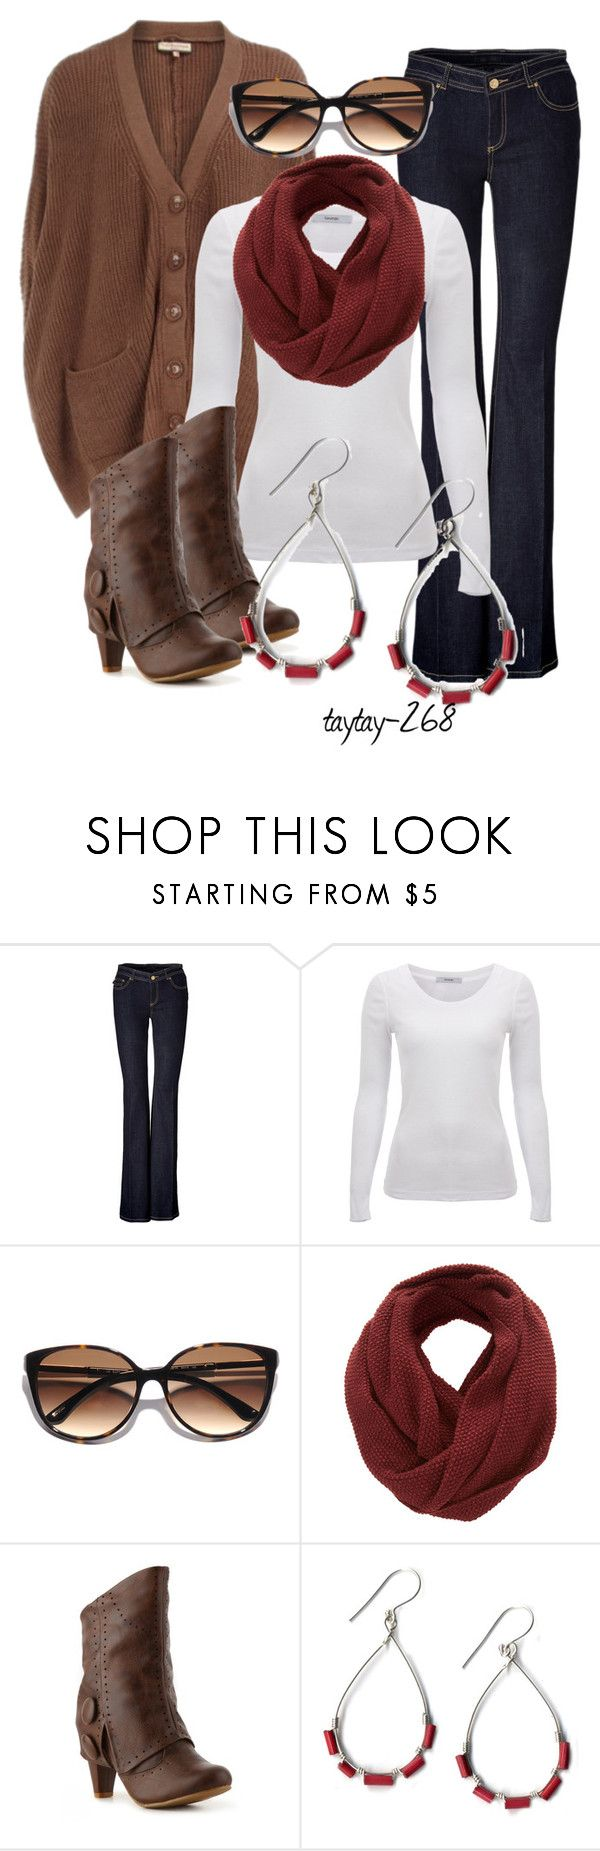 """""""These Boots"""" by taytay-268 ❤ liked on Polyvore featuring Rachel Zoe, Kate Spade, SELECTED, Not Rated, buckle ankle boots, infinity scarves, oversized cardigans, cardigans, ankle booties and flared jeans"""